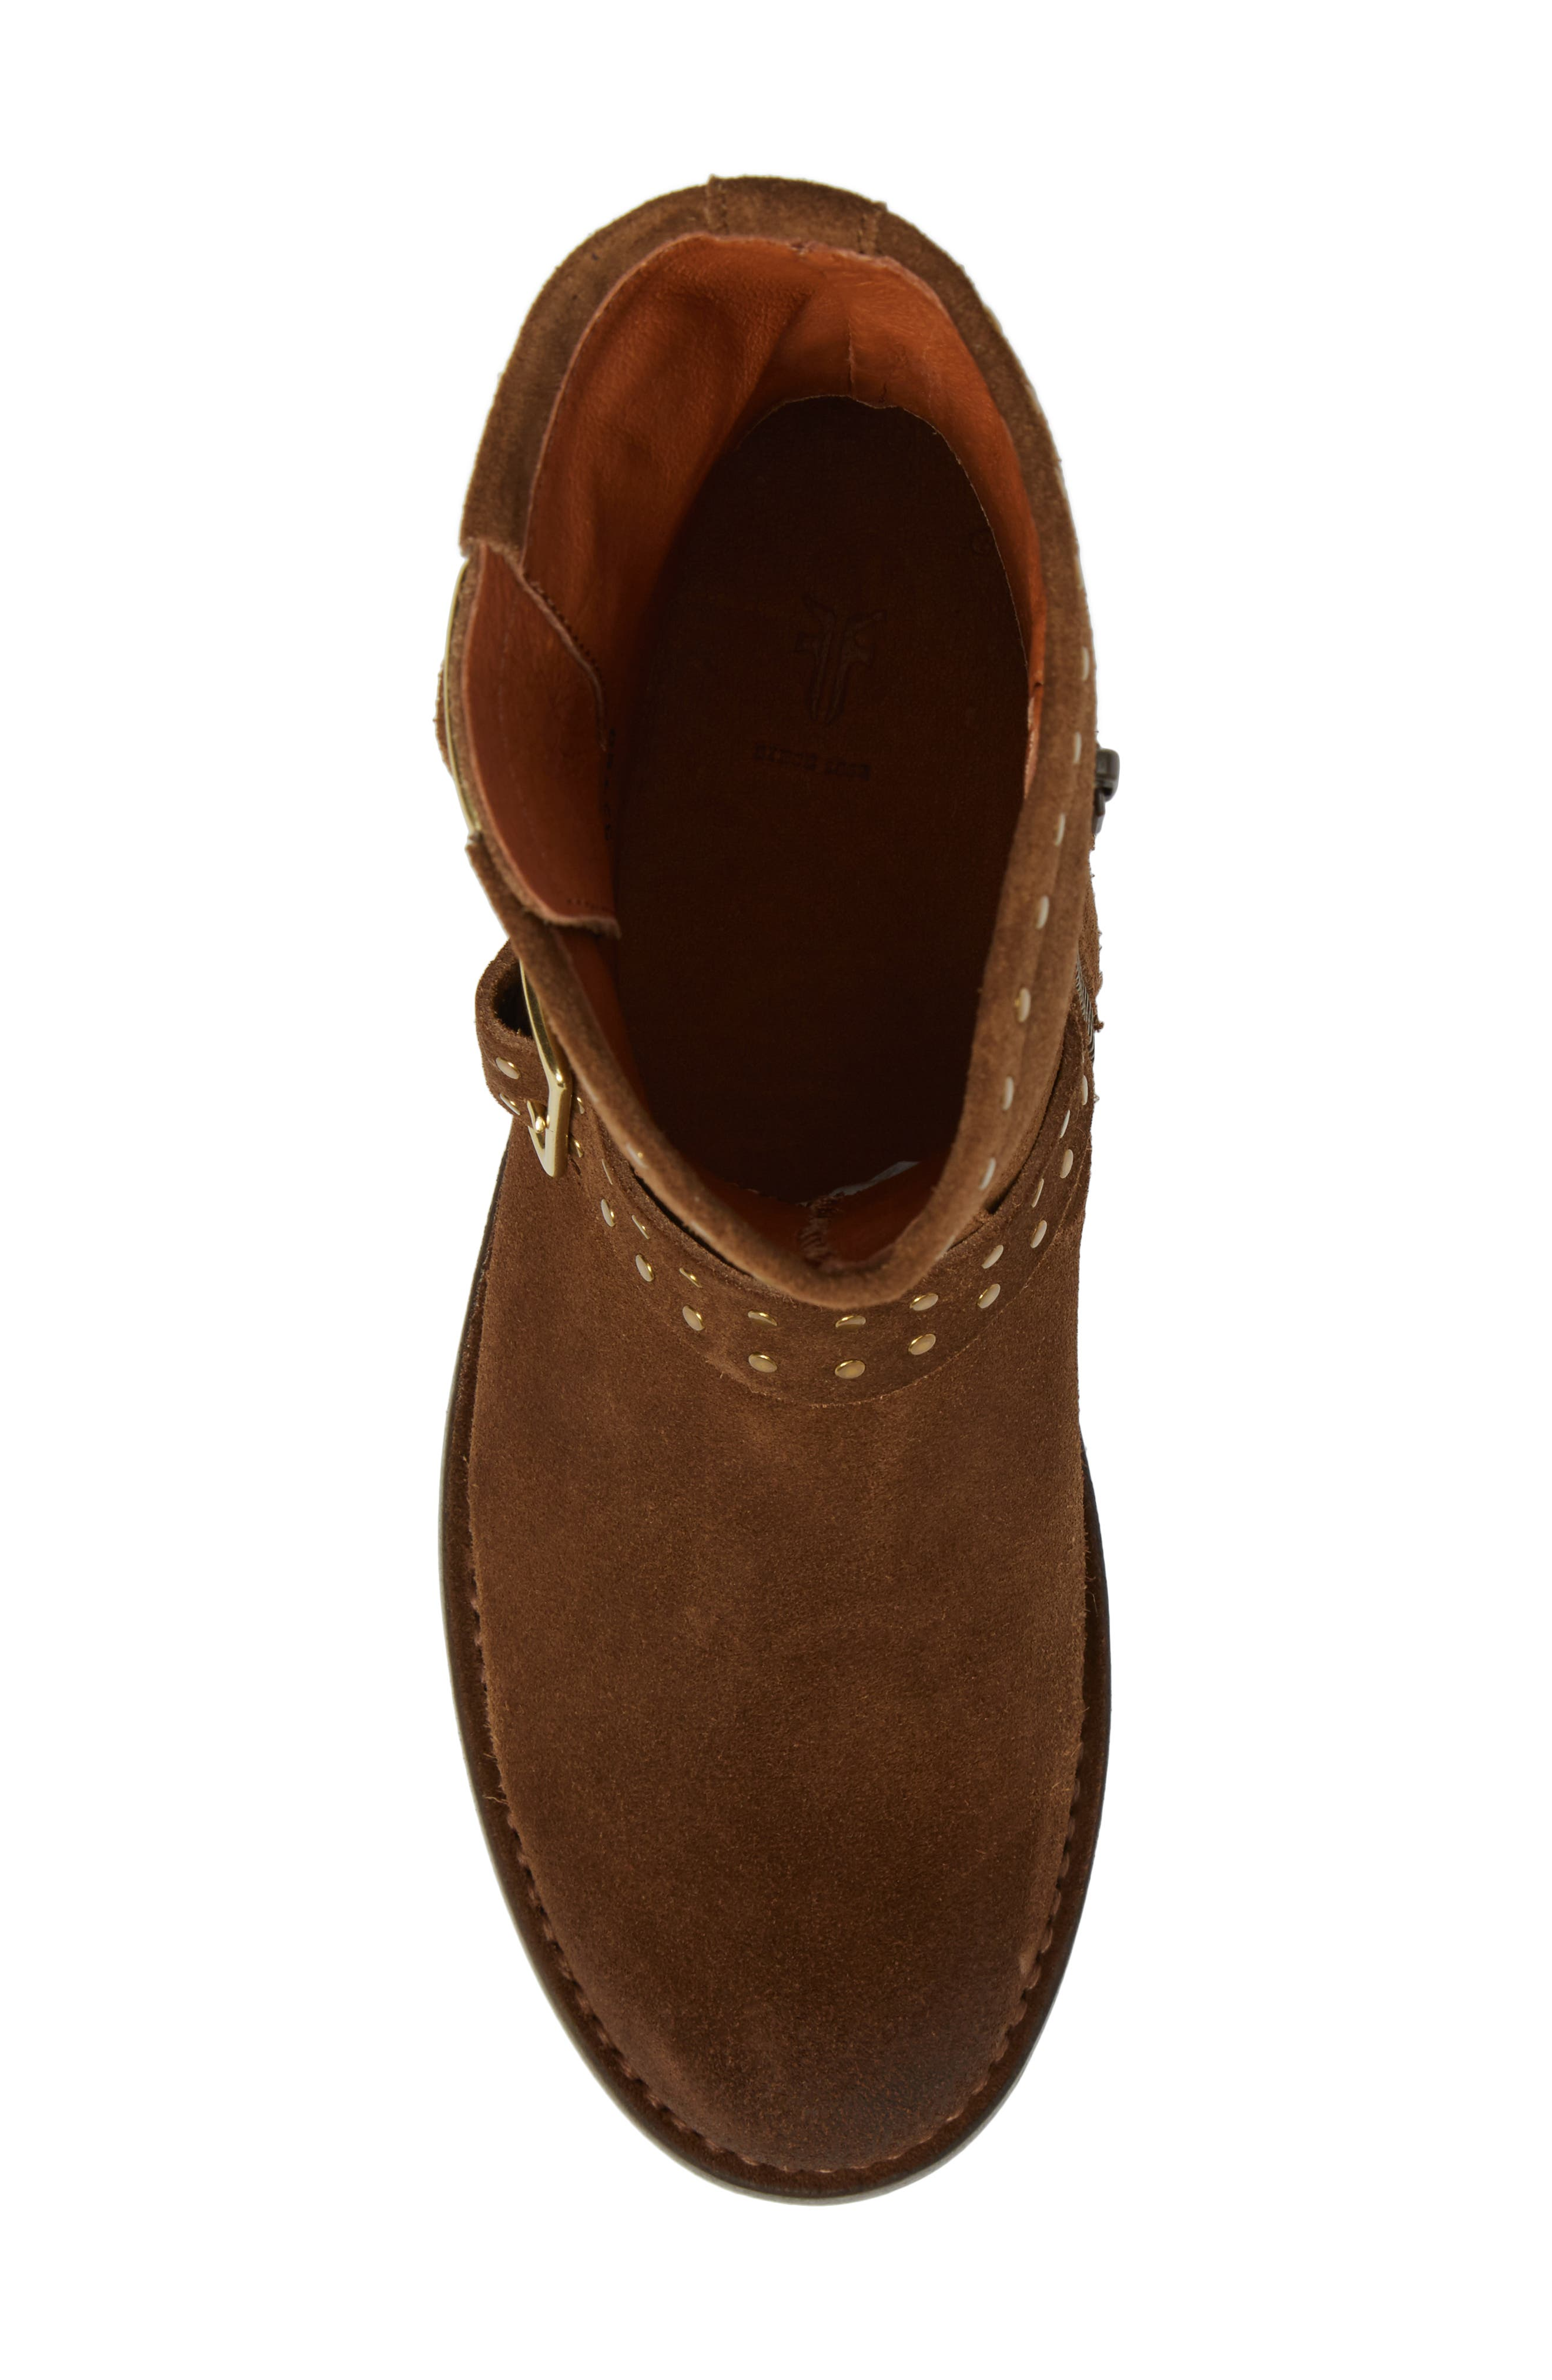 Vicky Stud Engineer Boot,                             Alternate thumbnail 5, color,                             Chestnut Suede